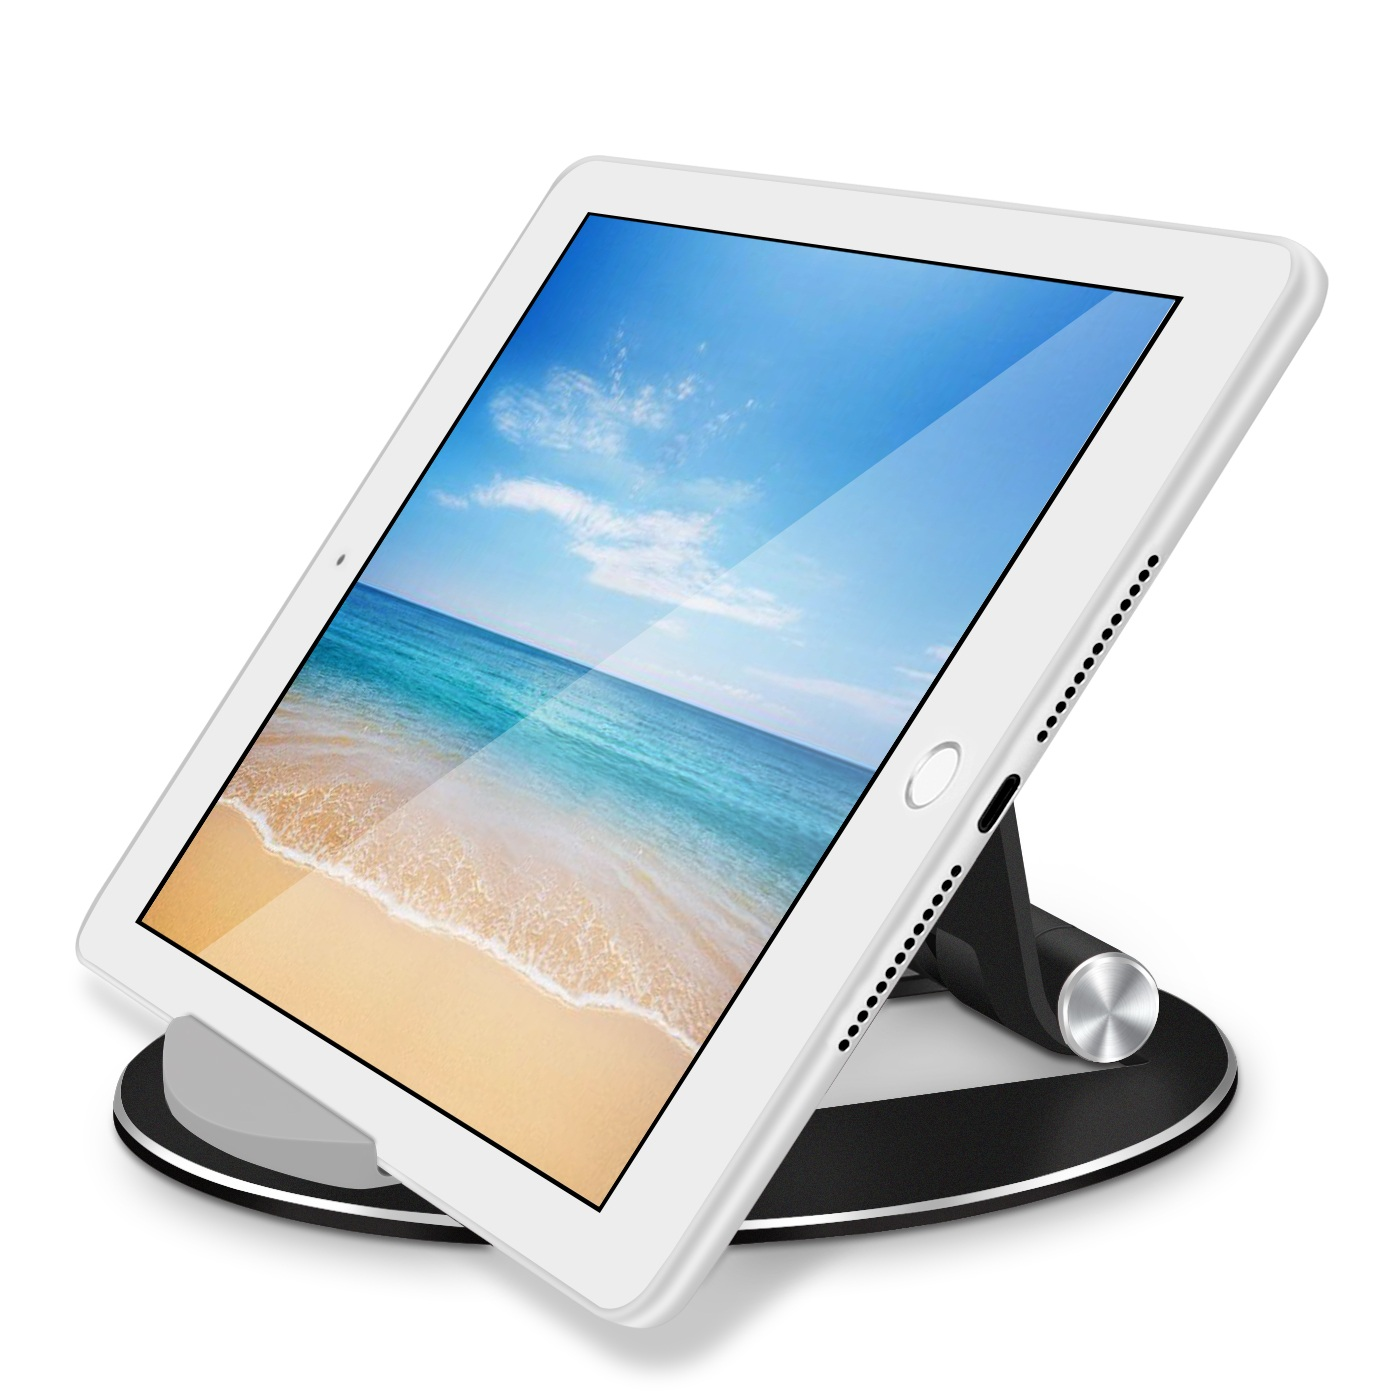 цена на Bed Desk Holder Stand for The Tablet Support for iPad Xiaomi Mi Pad 4 Samsung Tab 3 Universal Accessories Metal Adjustable Angle